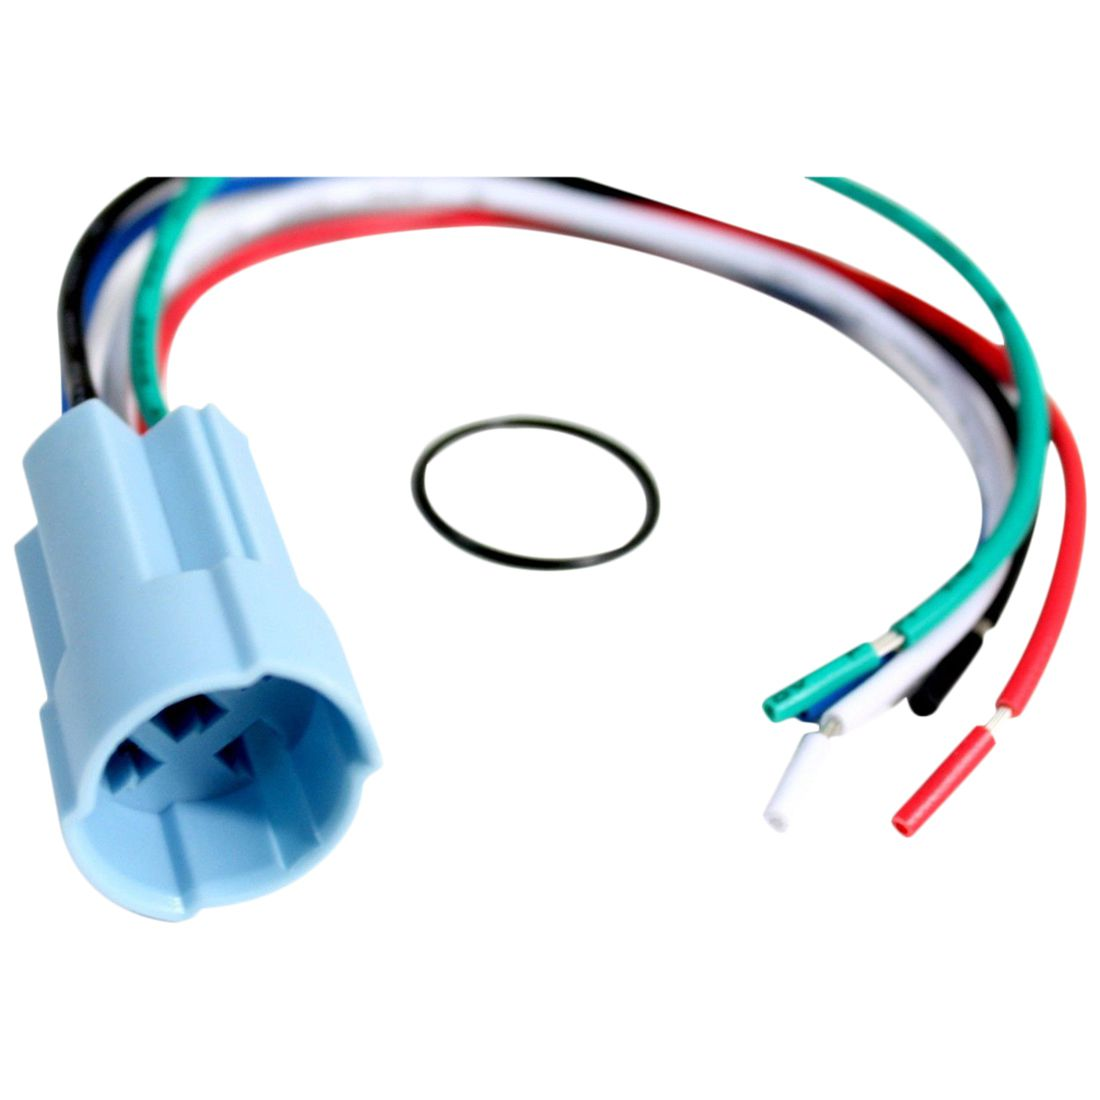 16mm Blue On Off Led 12v Latching Push Button Power Switch Electrical Wiring May Be Installed For Continuous Illumination Or Mode Type